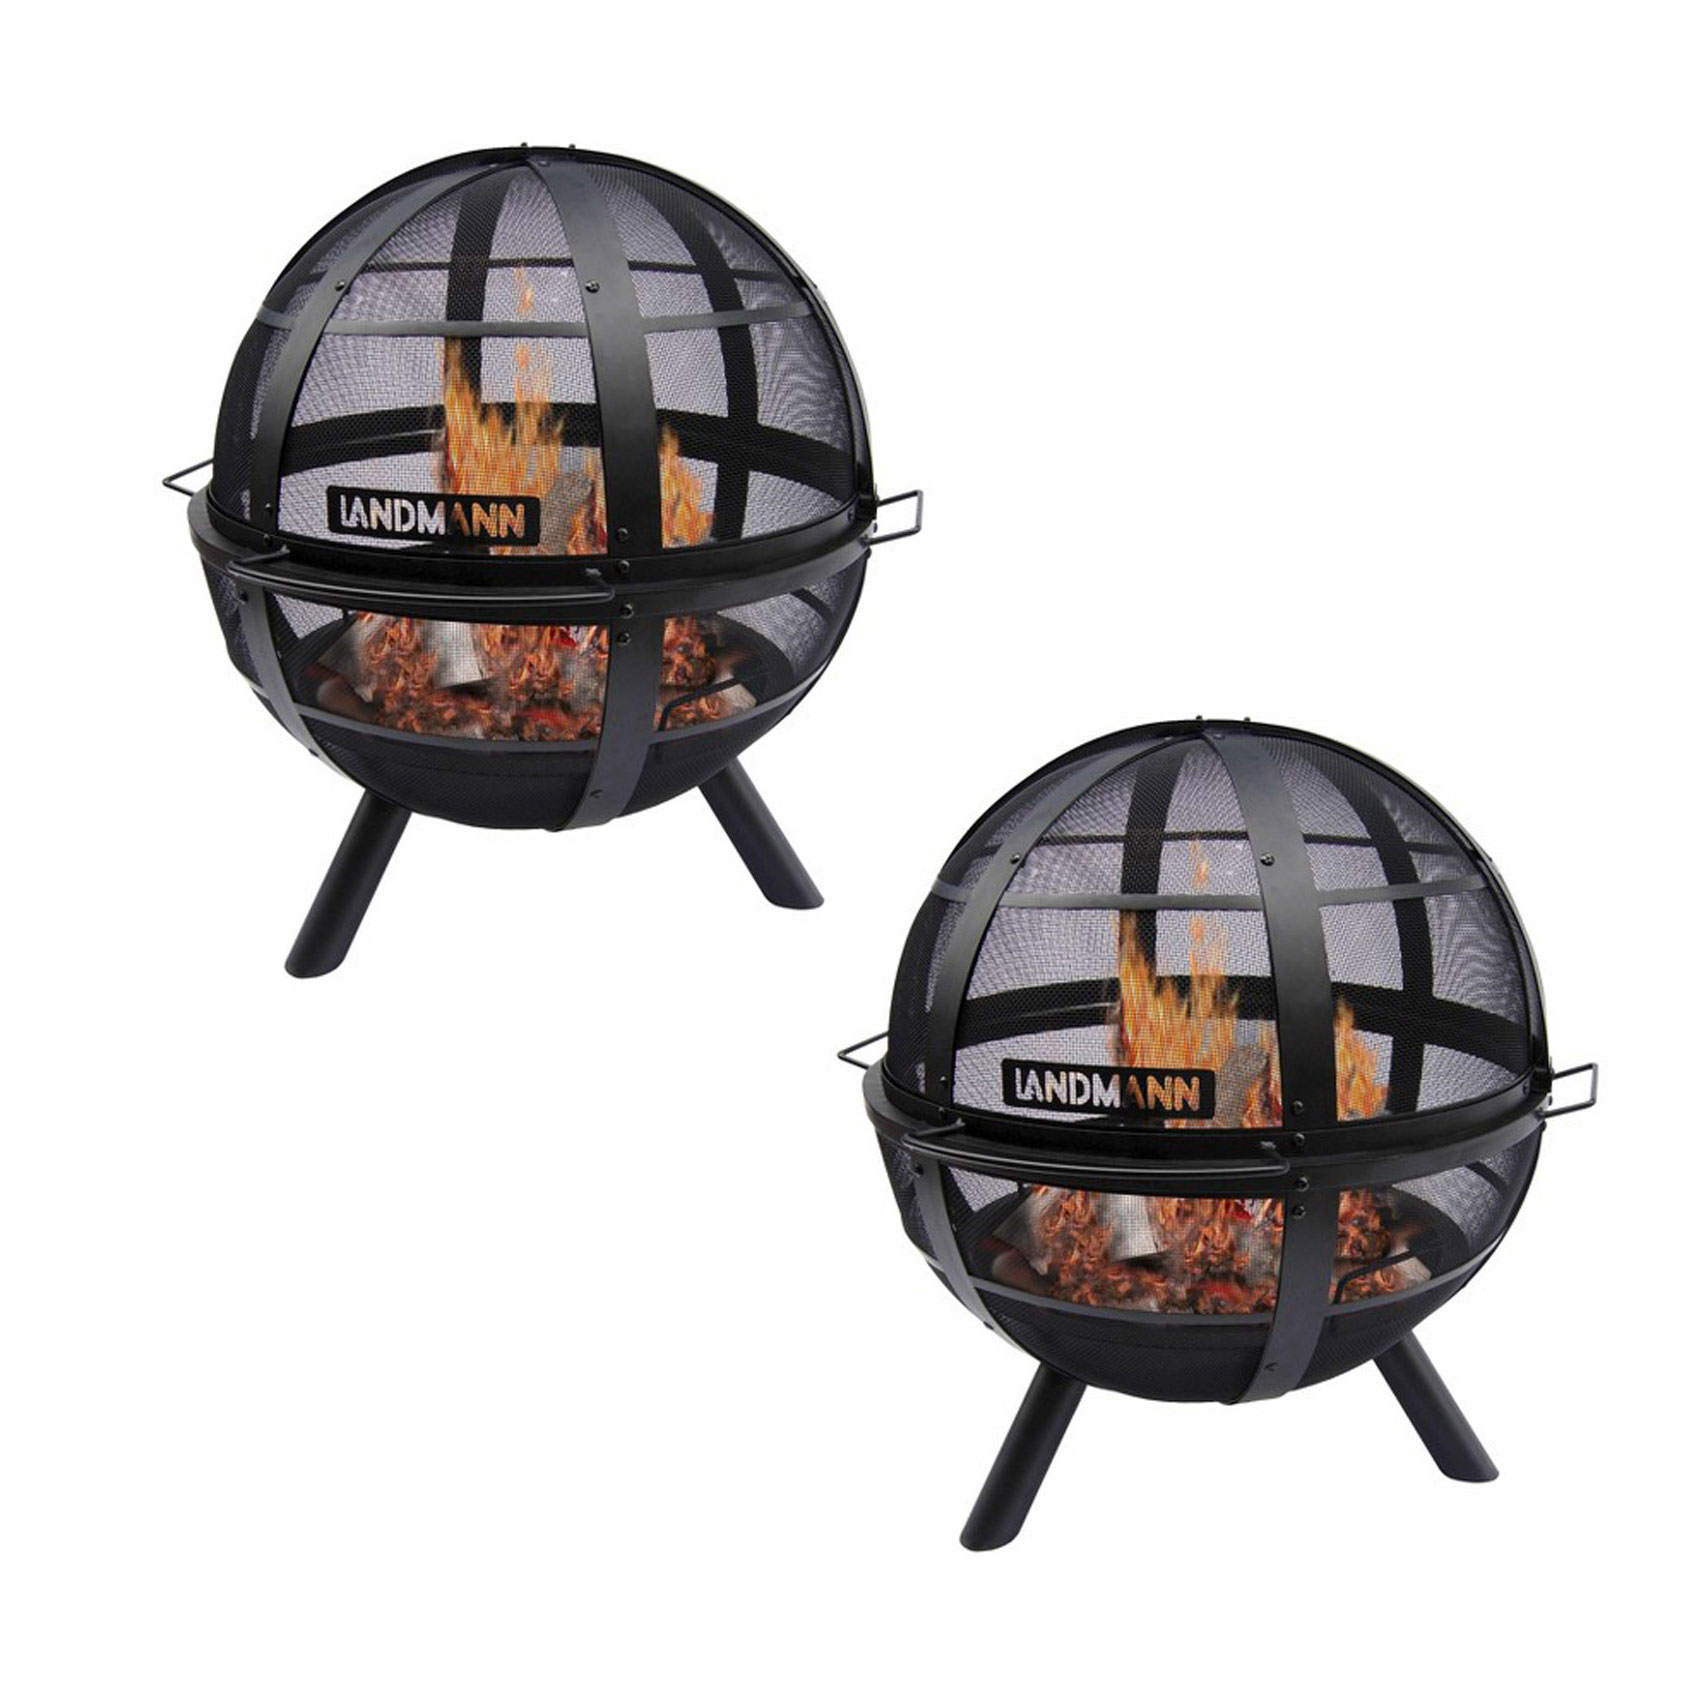 Landmann Usa Ball Of Fire Outdoor Patio Steel Bowl Fire Pit With